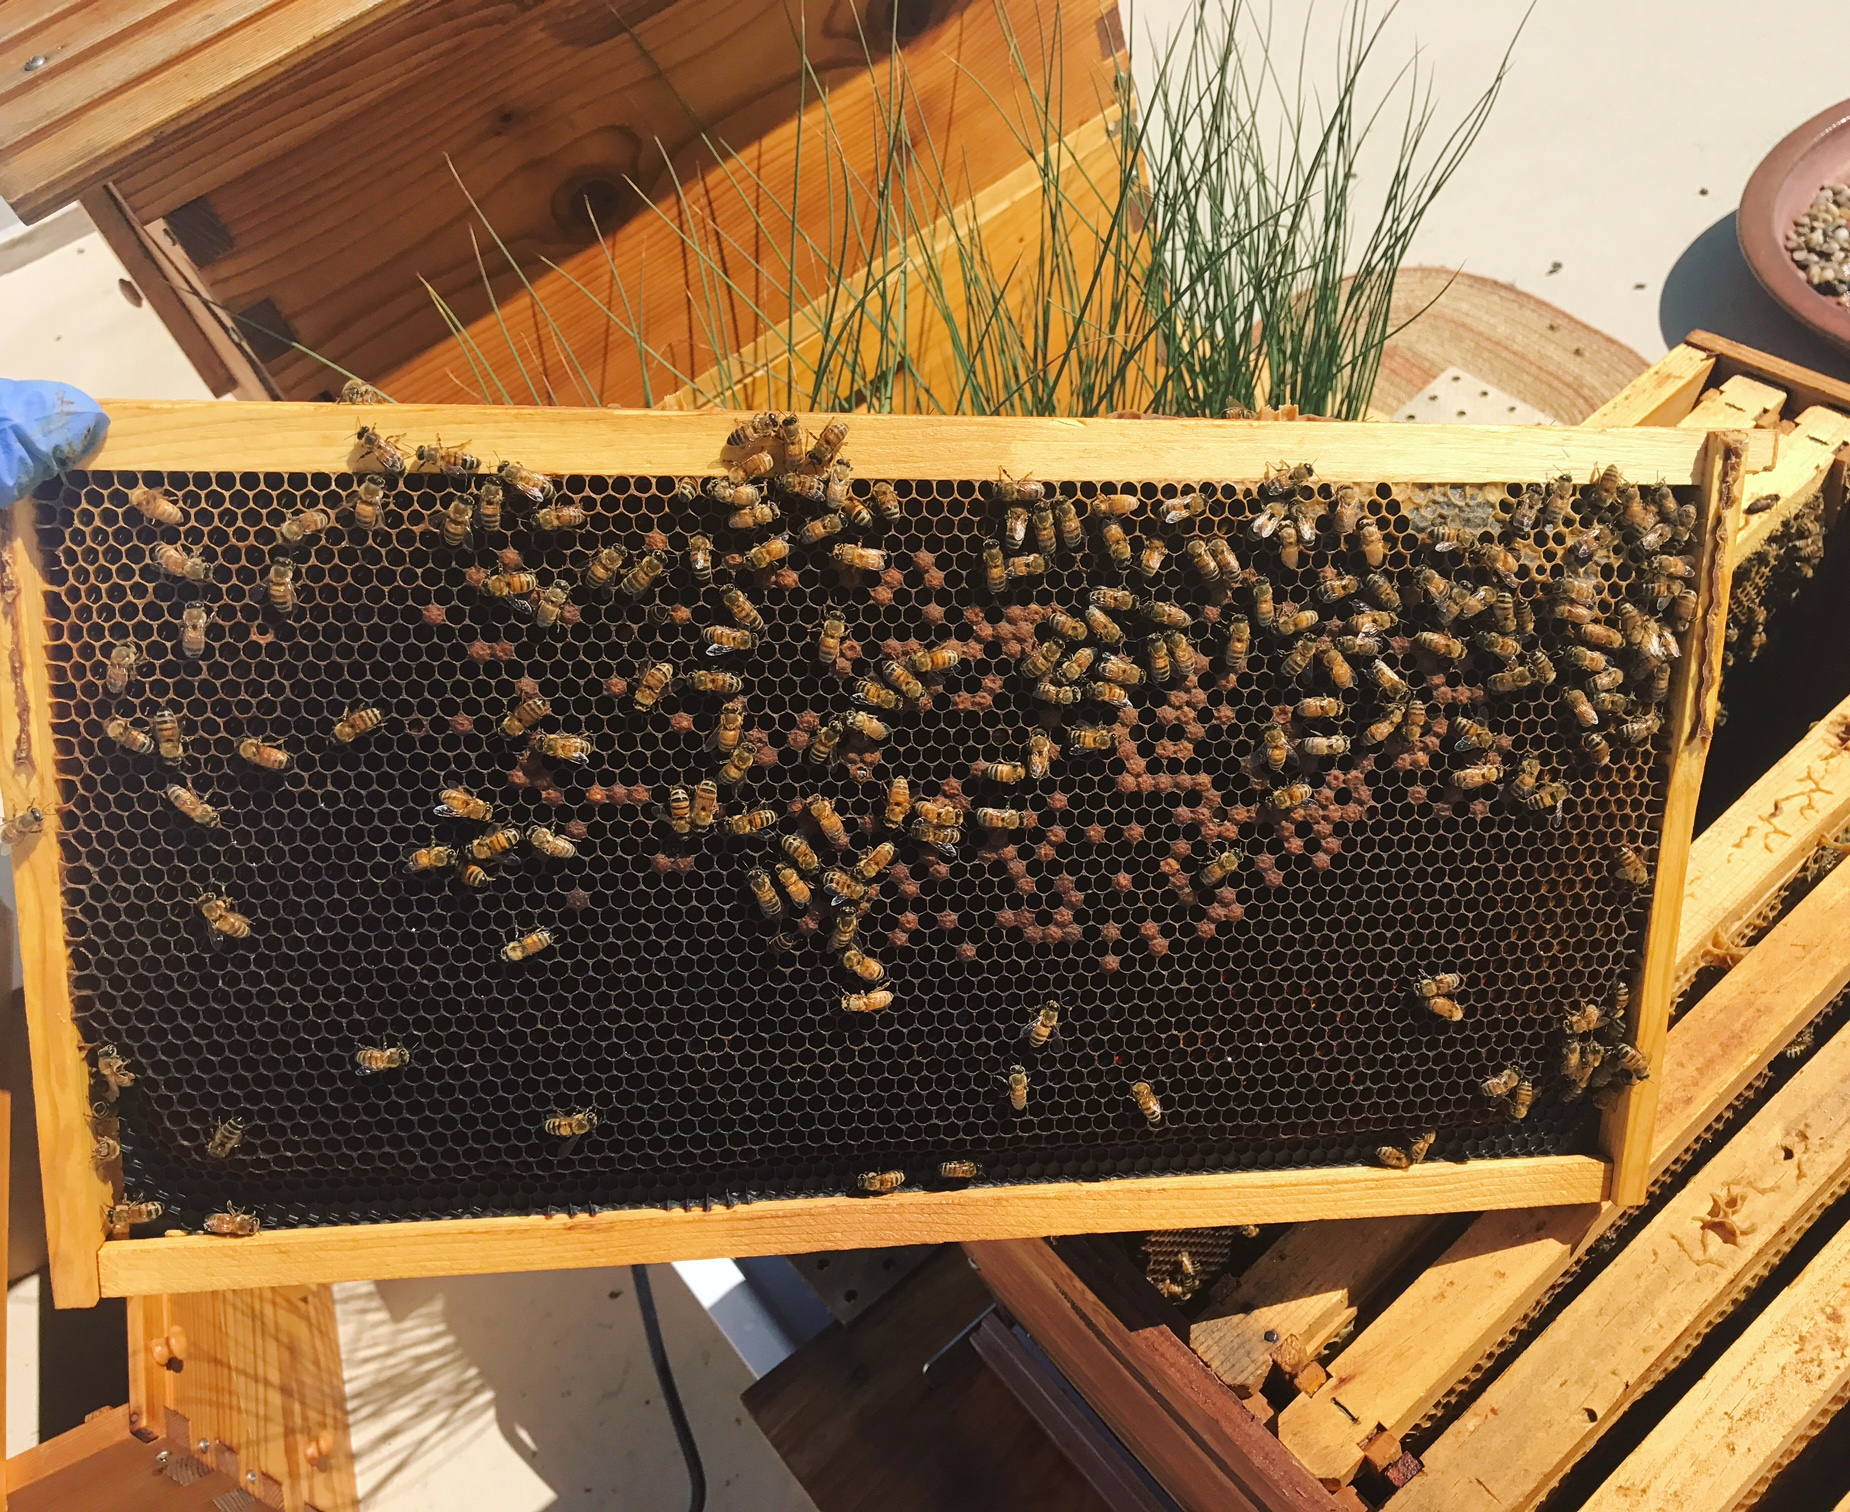 5 WAYS TO HELP A FAILING HIVE - Beekeeping Like A Girl